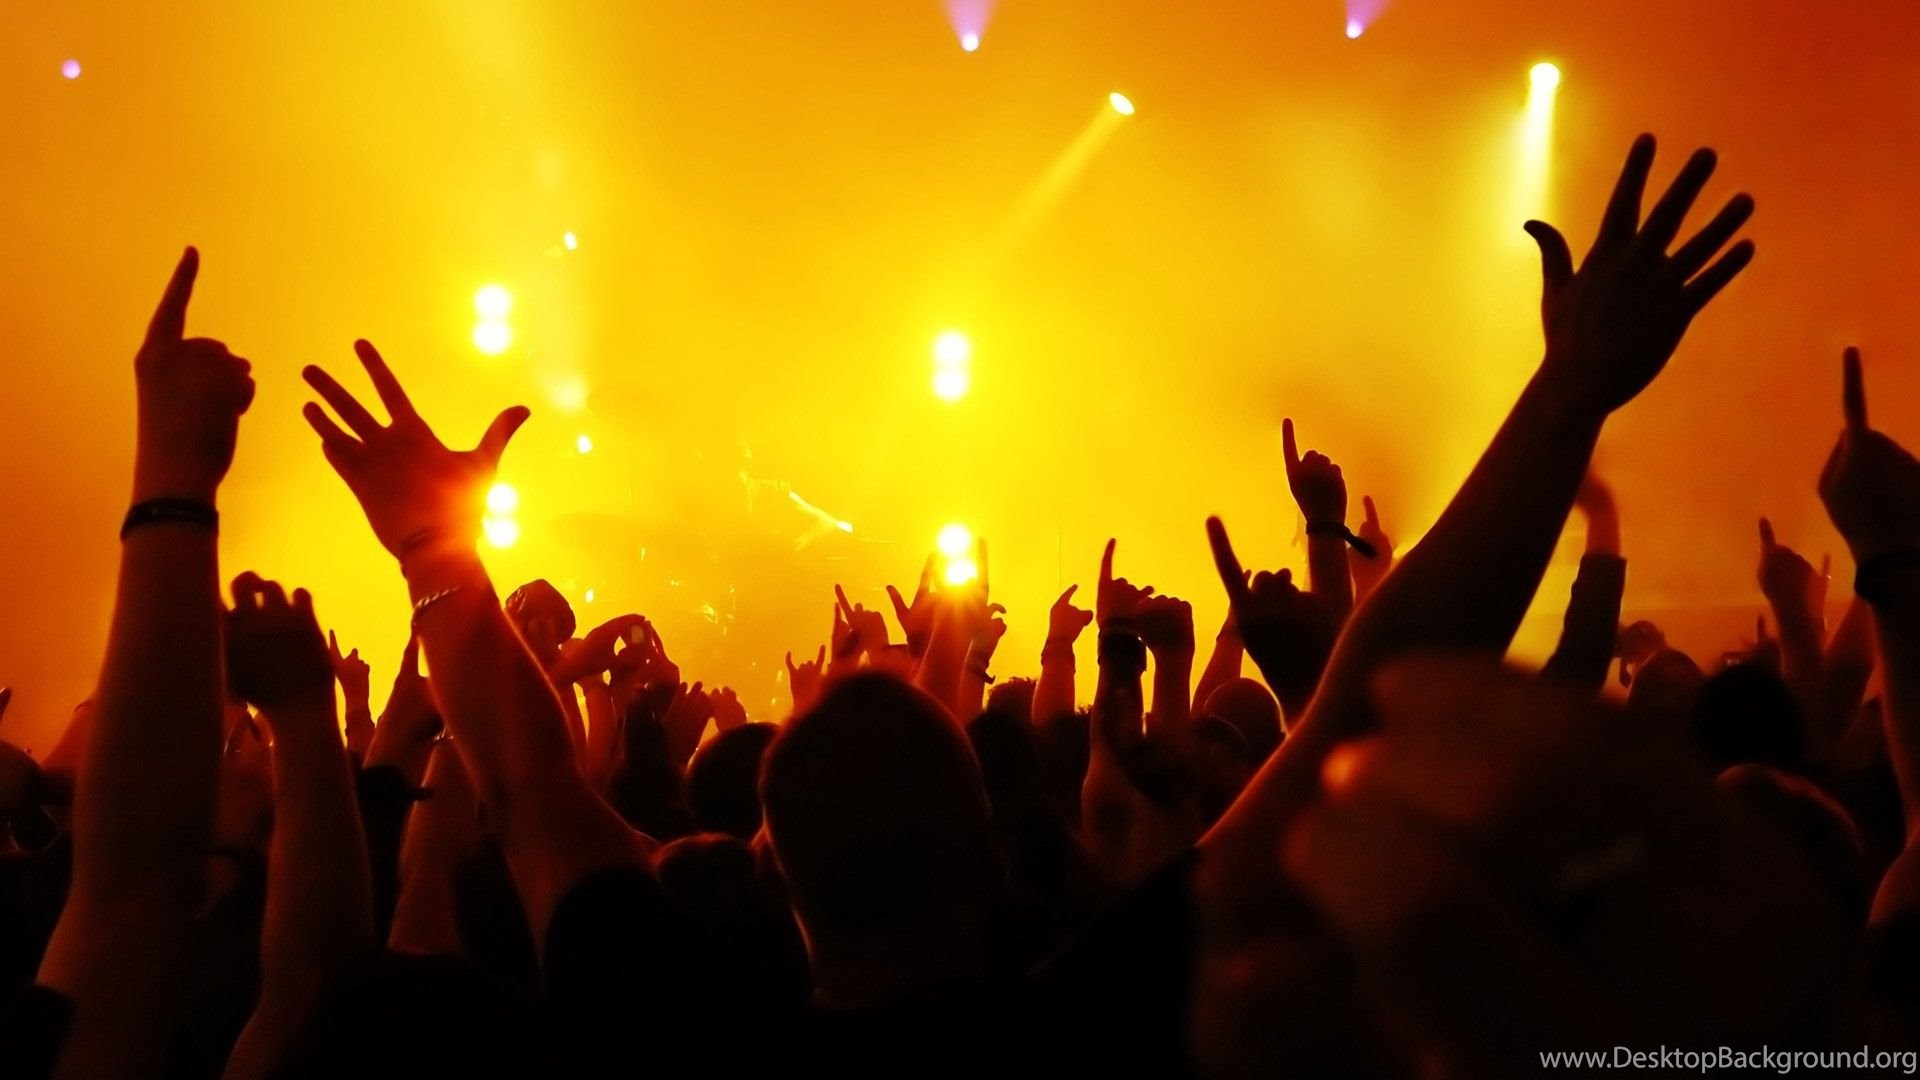 34 people concert wallpapers 1080p backgrounds concert people